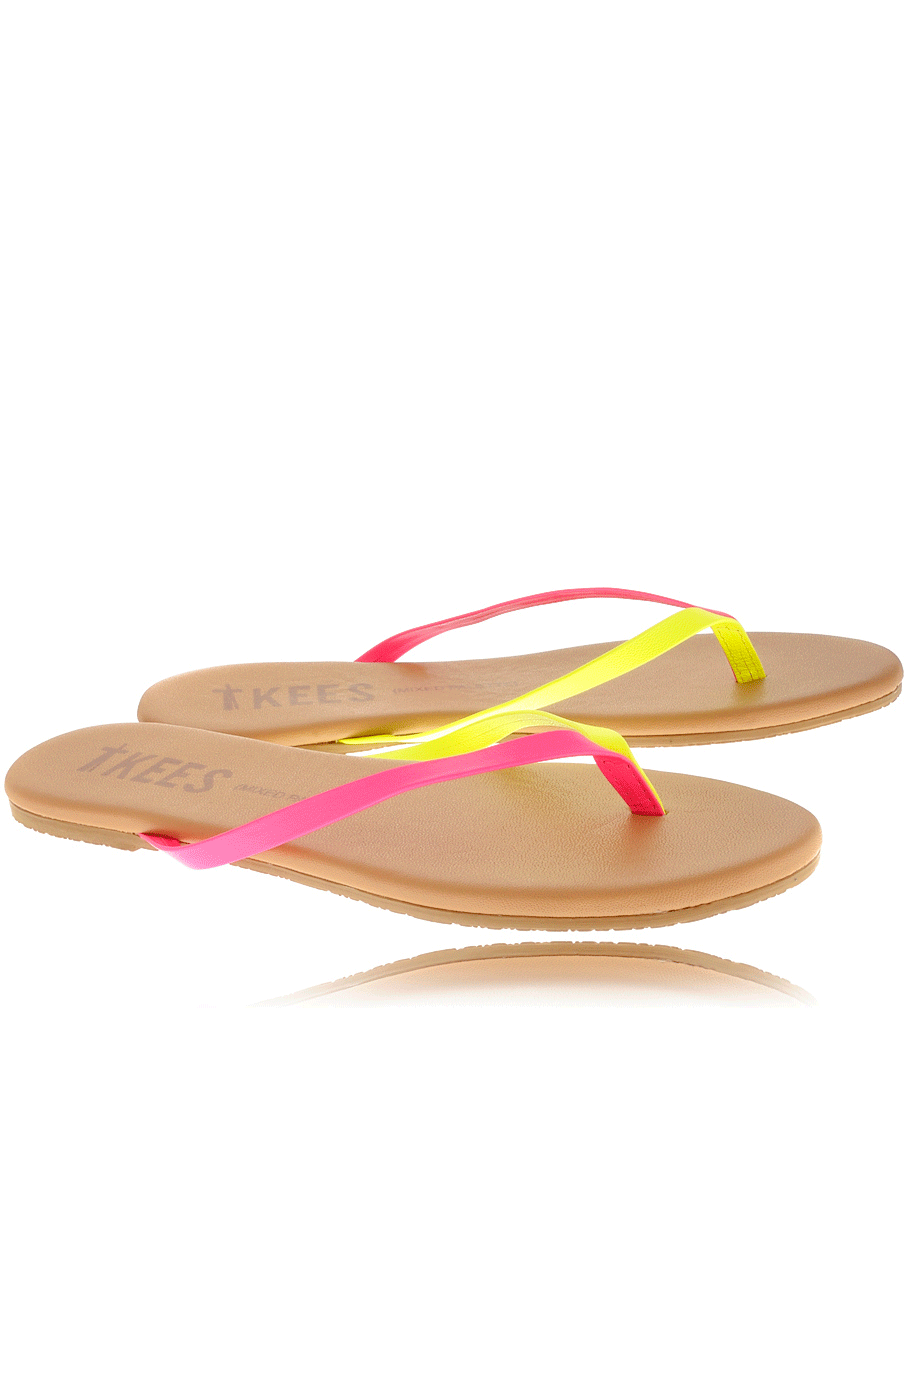 30ae25265 TKEES MIXED PALETTE Pink Citrus Leather Thong Sandals – PRET-A ...